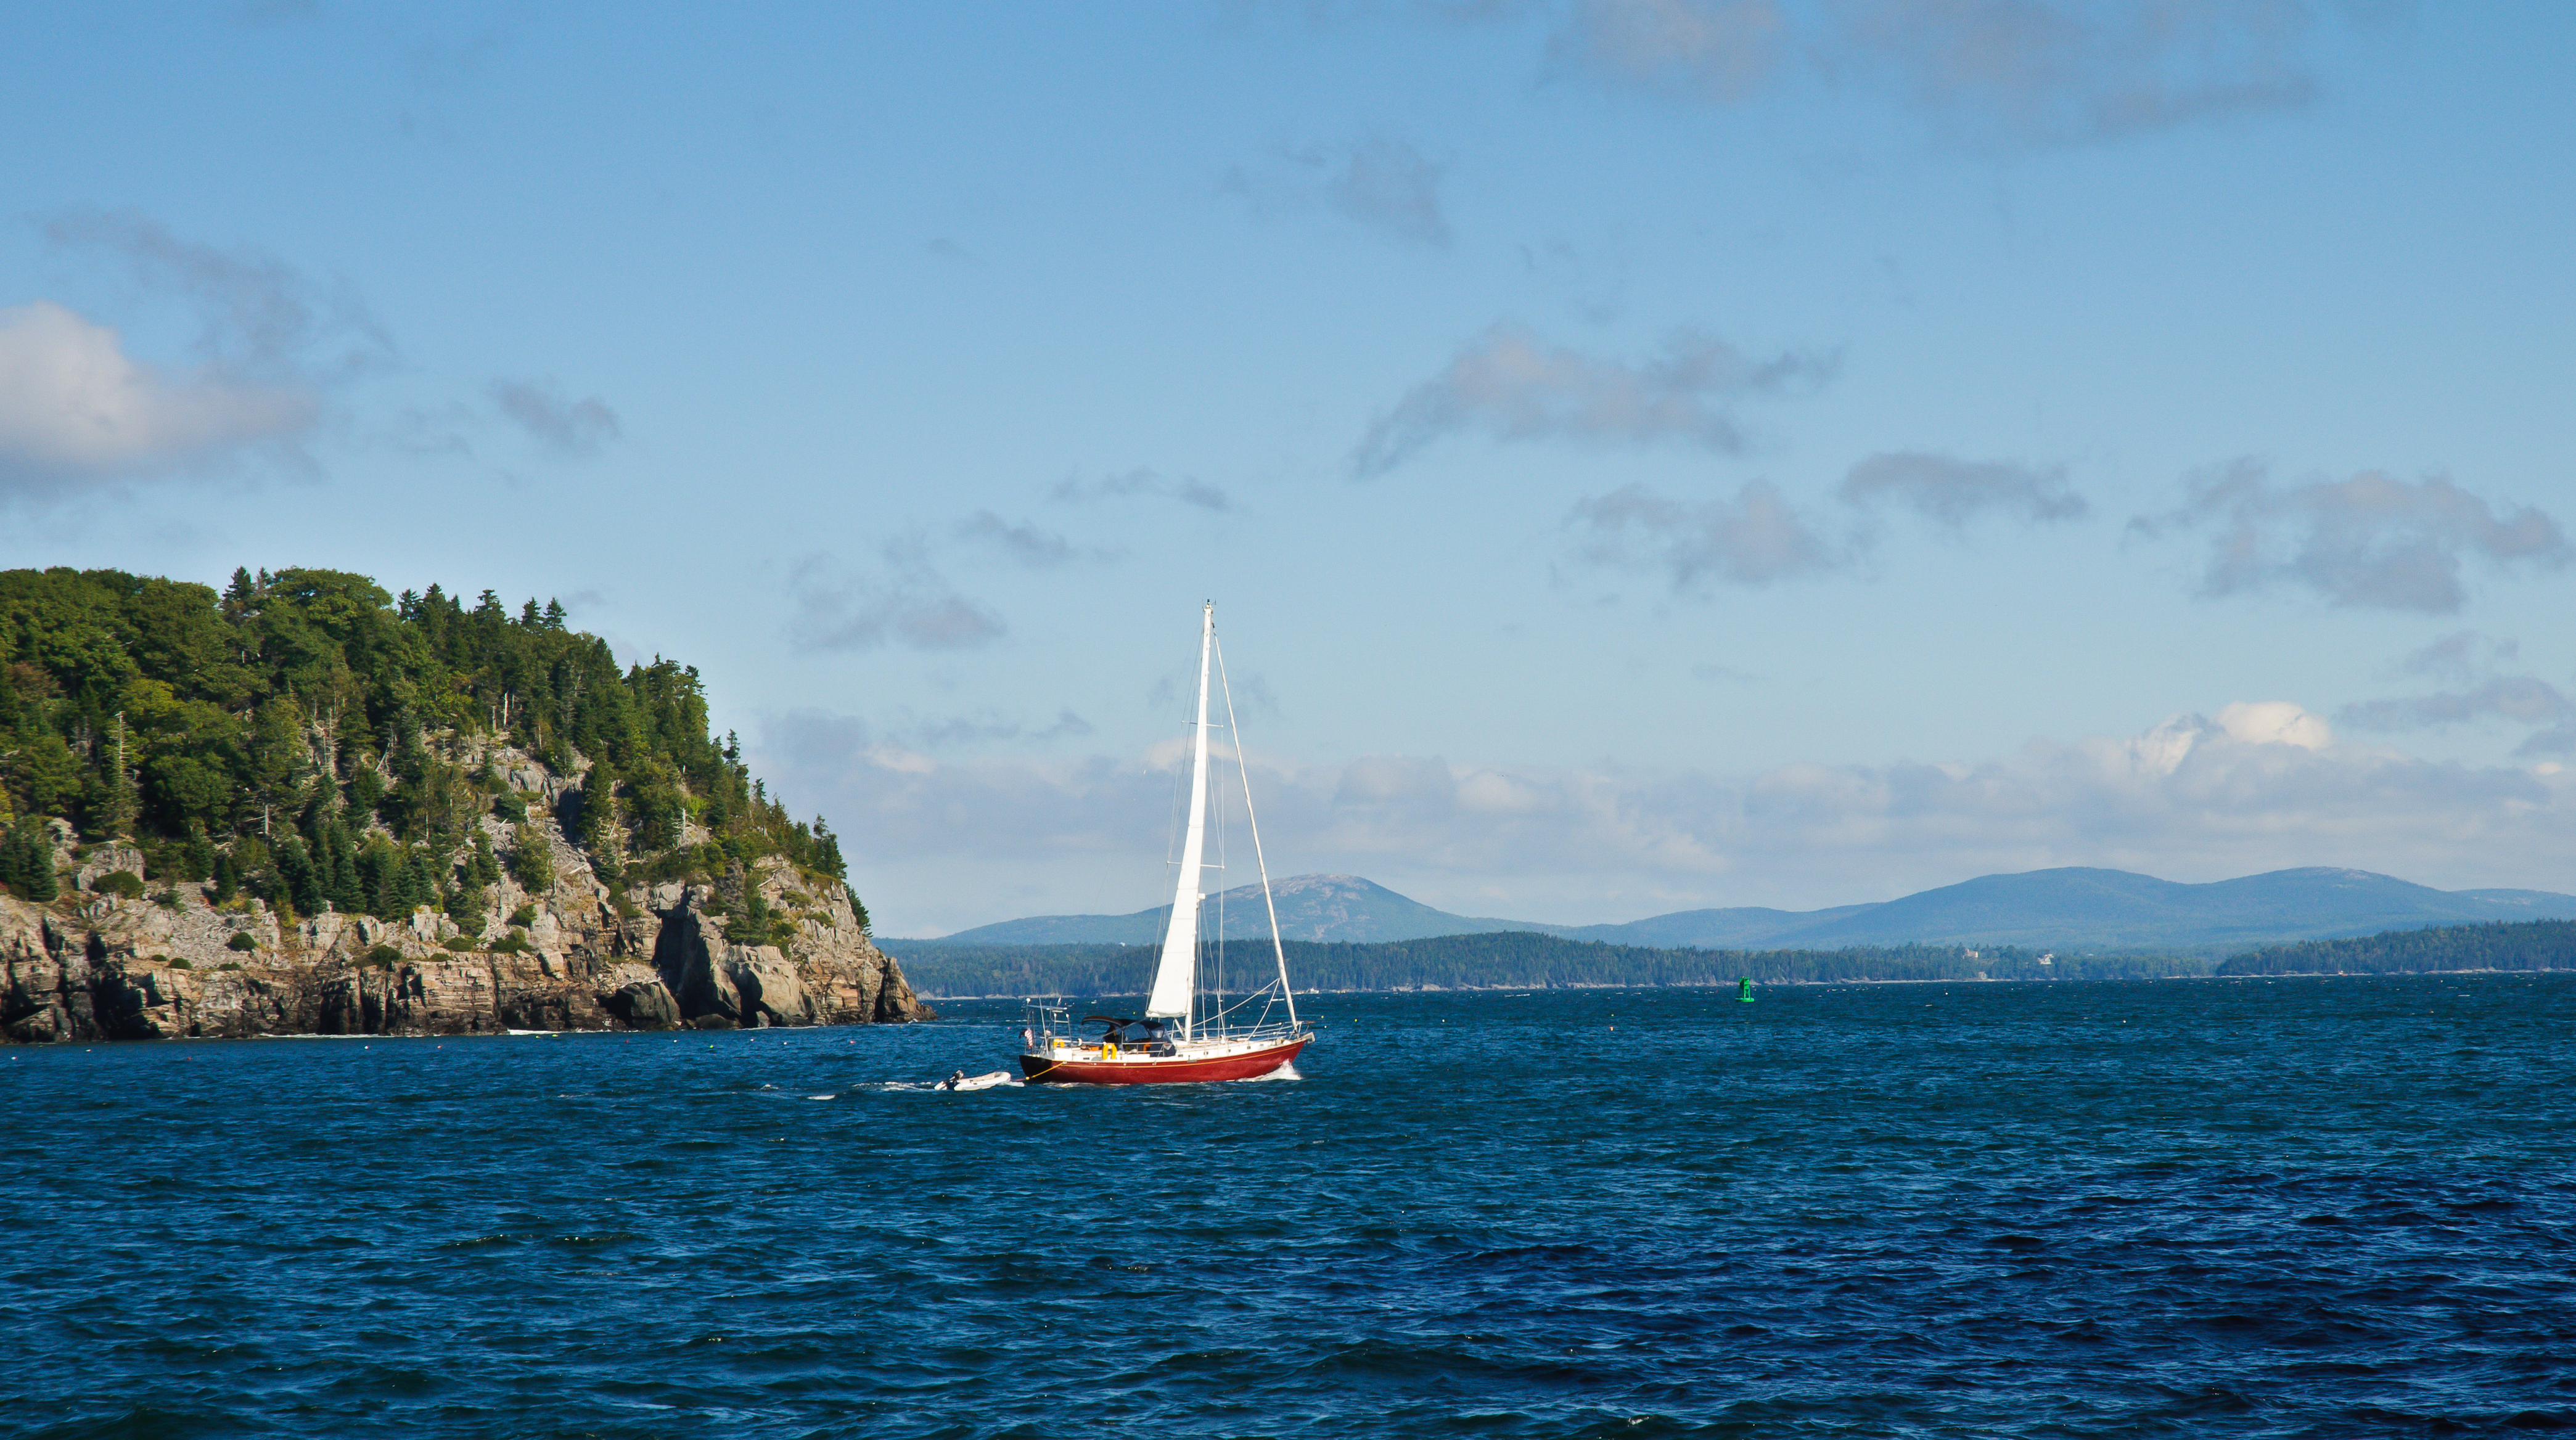 A lone sailboat sails out of a bay.